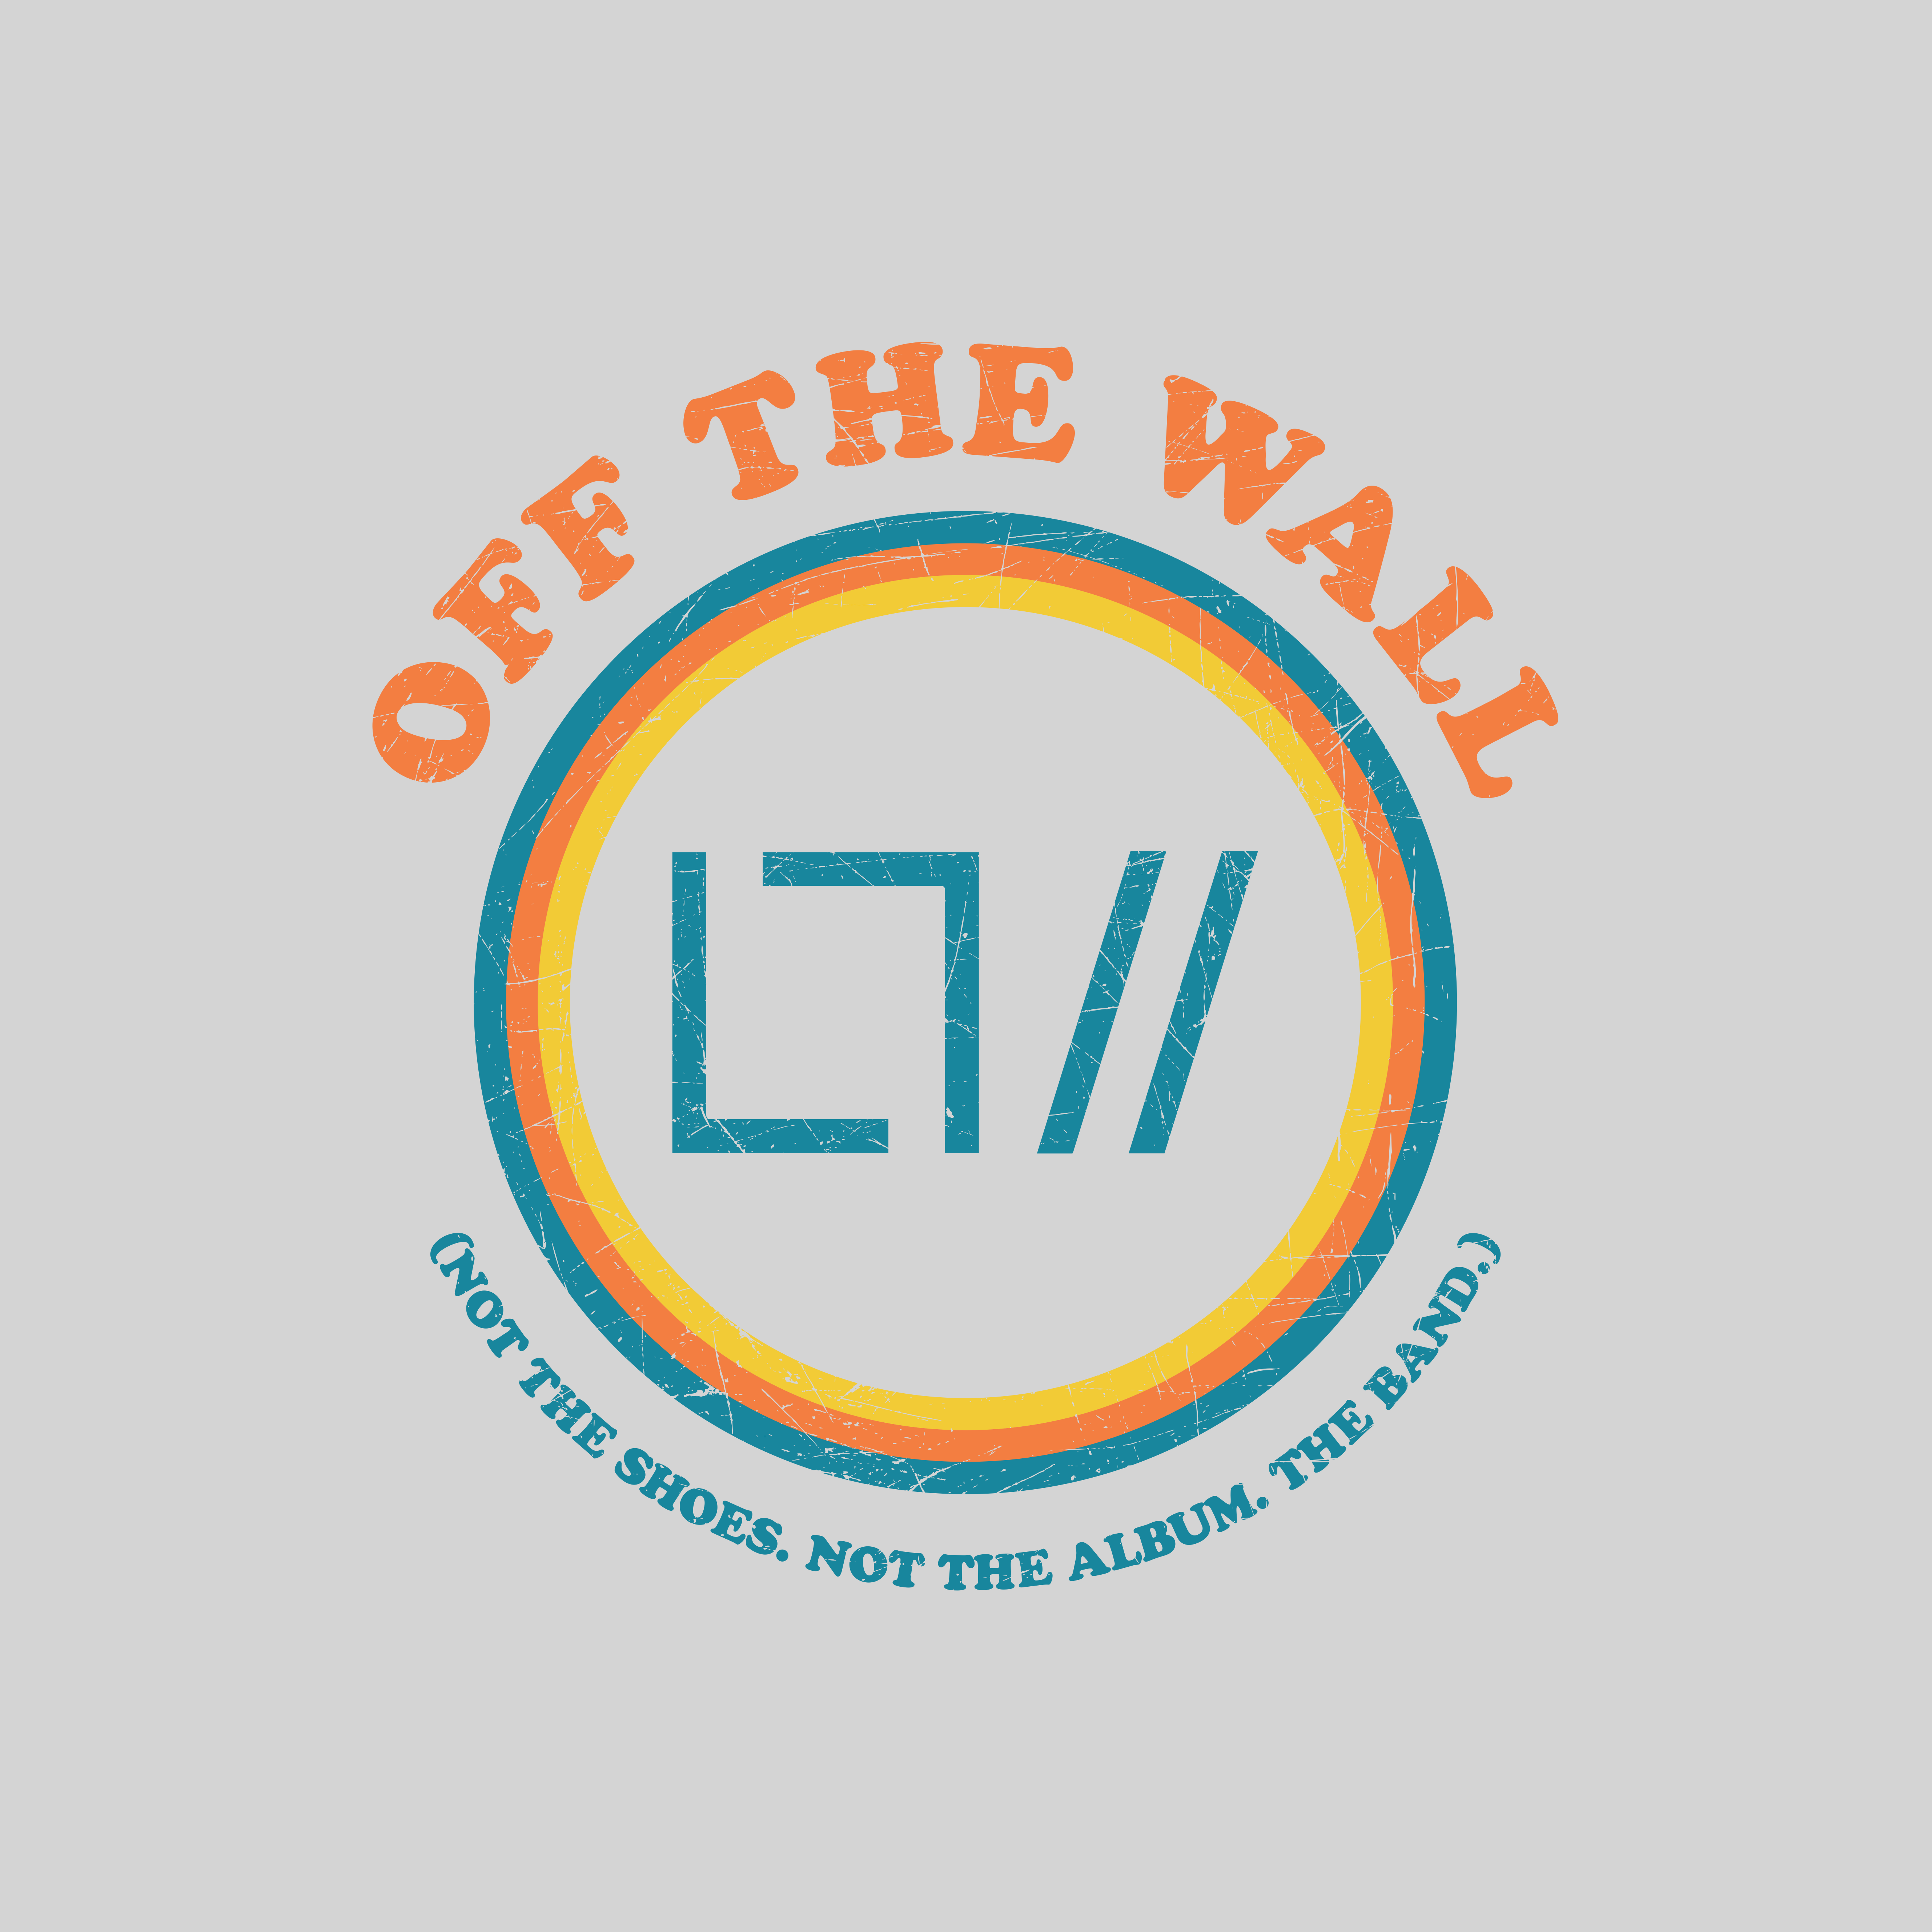 Off the Wall Band Tees